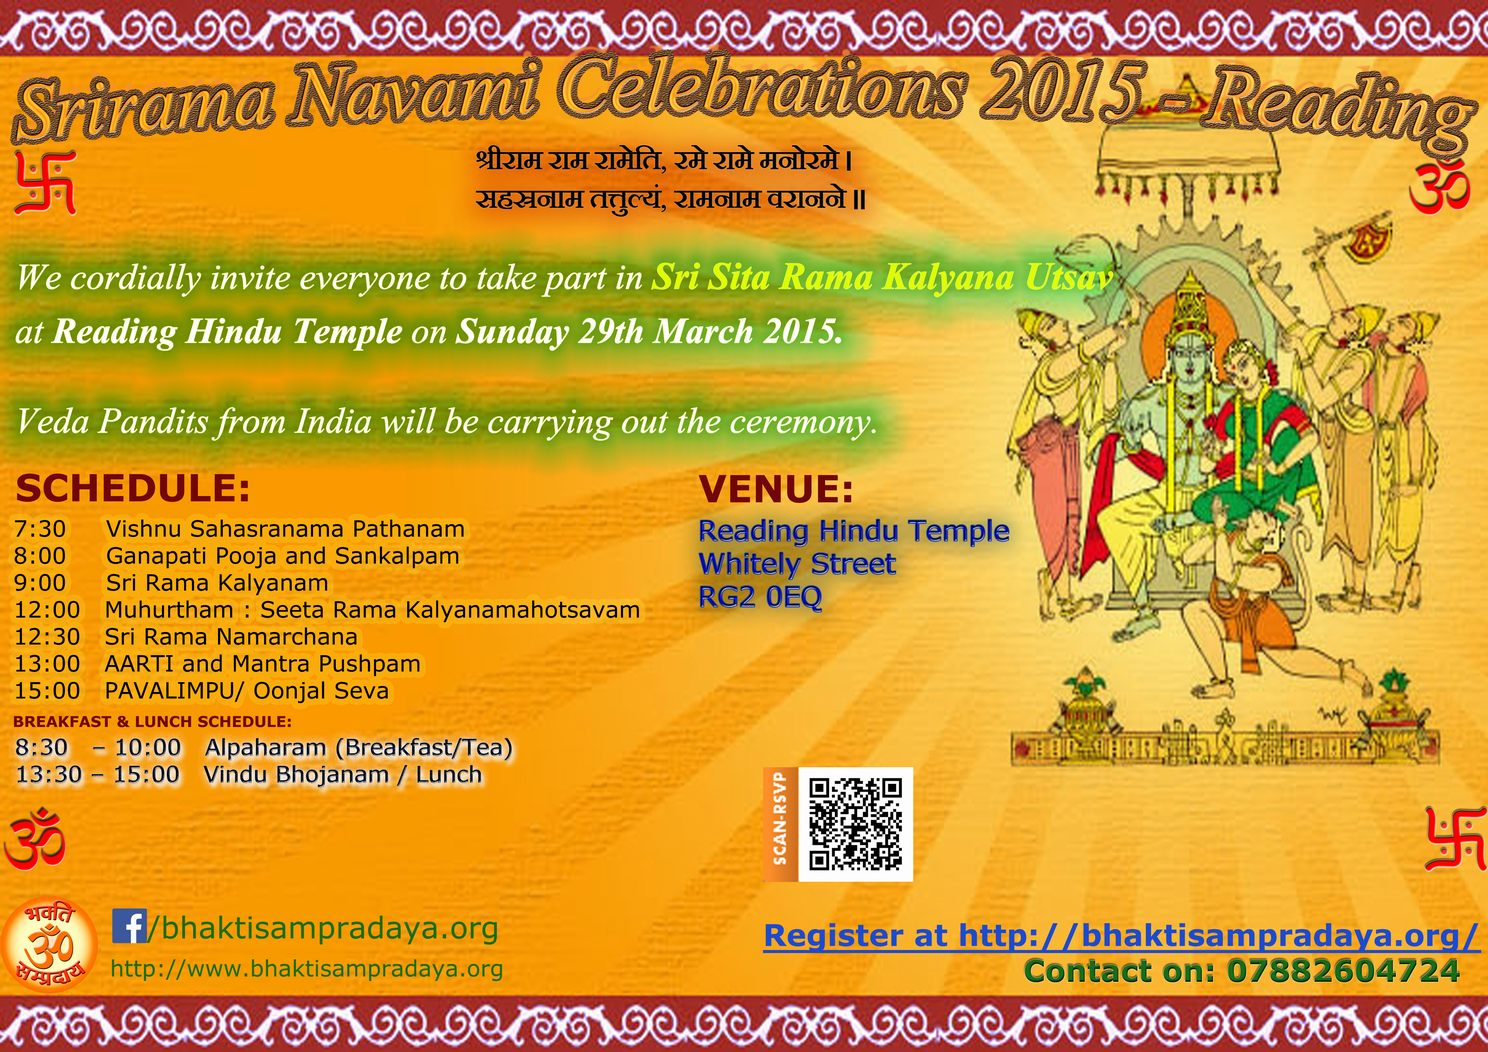 Upcoming Events | Sri Rama Navami Celebrations in Reading 2015 |